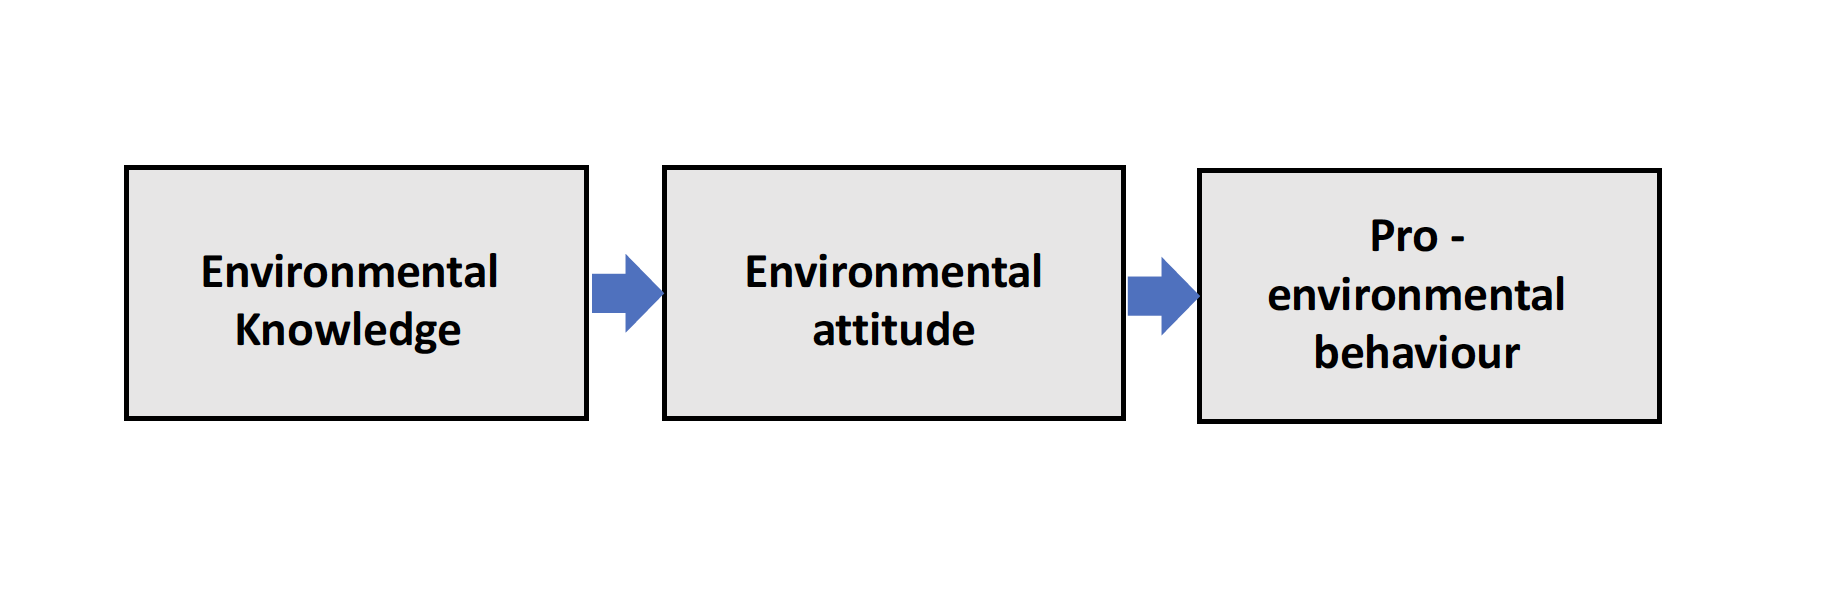 Figure 1. Early models of pro-environmental behaviour (reproduced from Kollmuss & Agyeman, 2002, p.241)